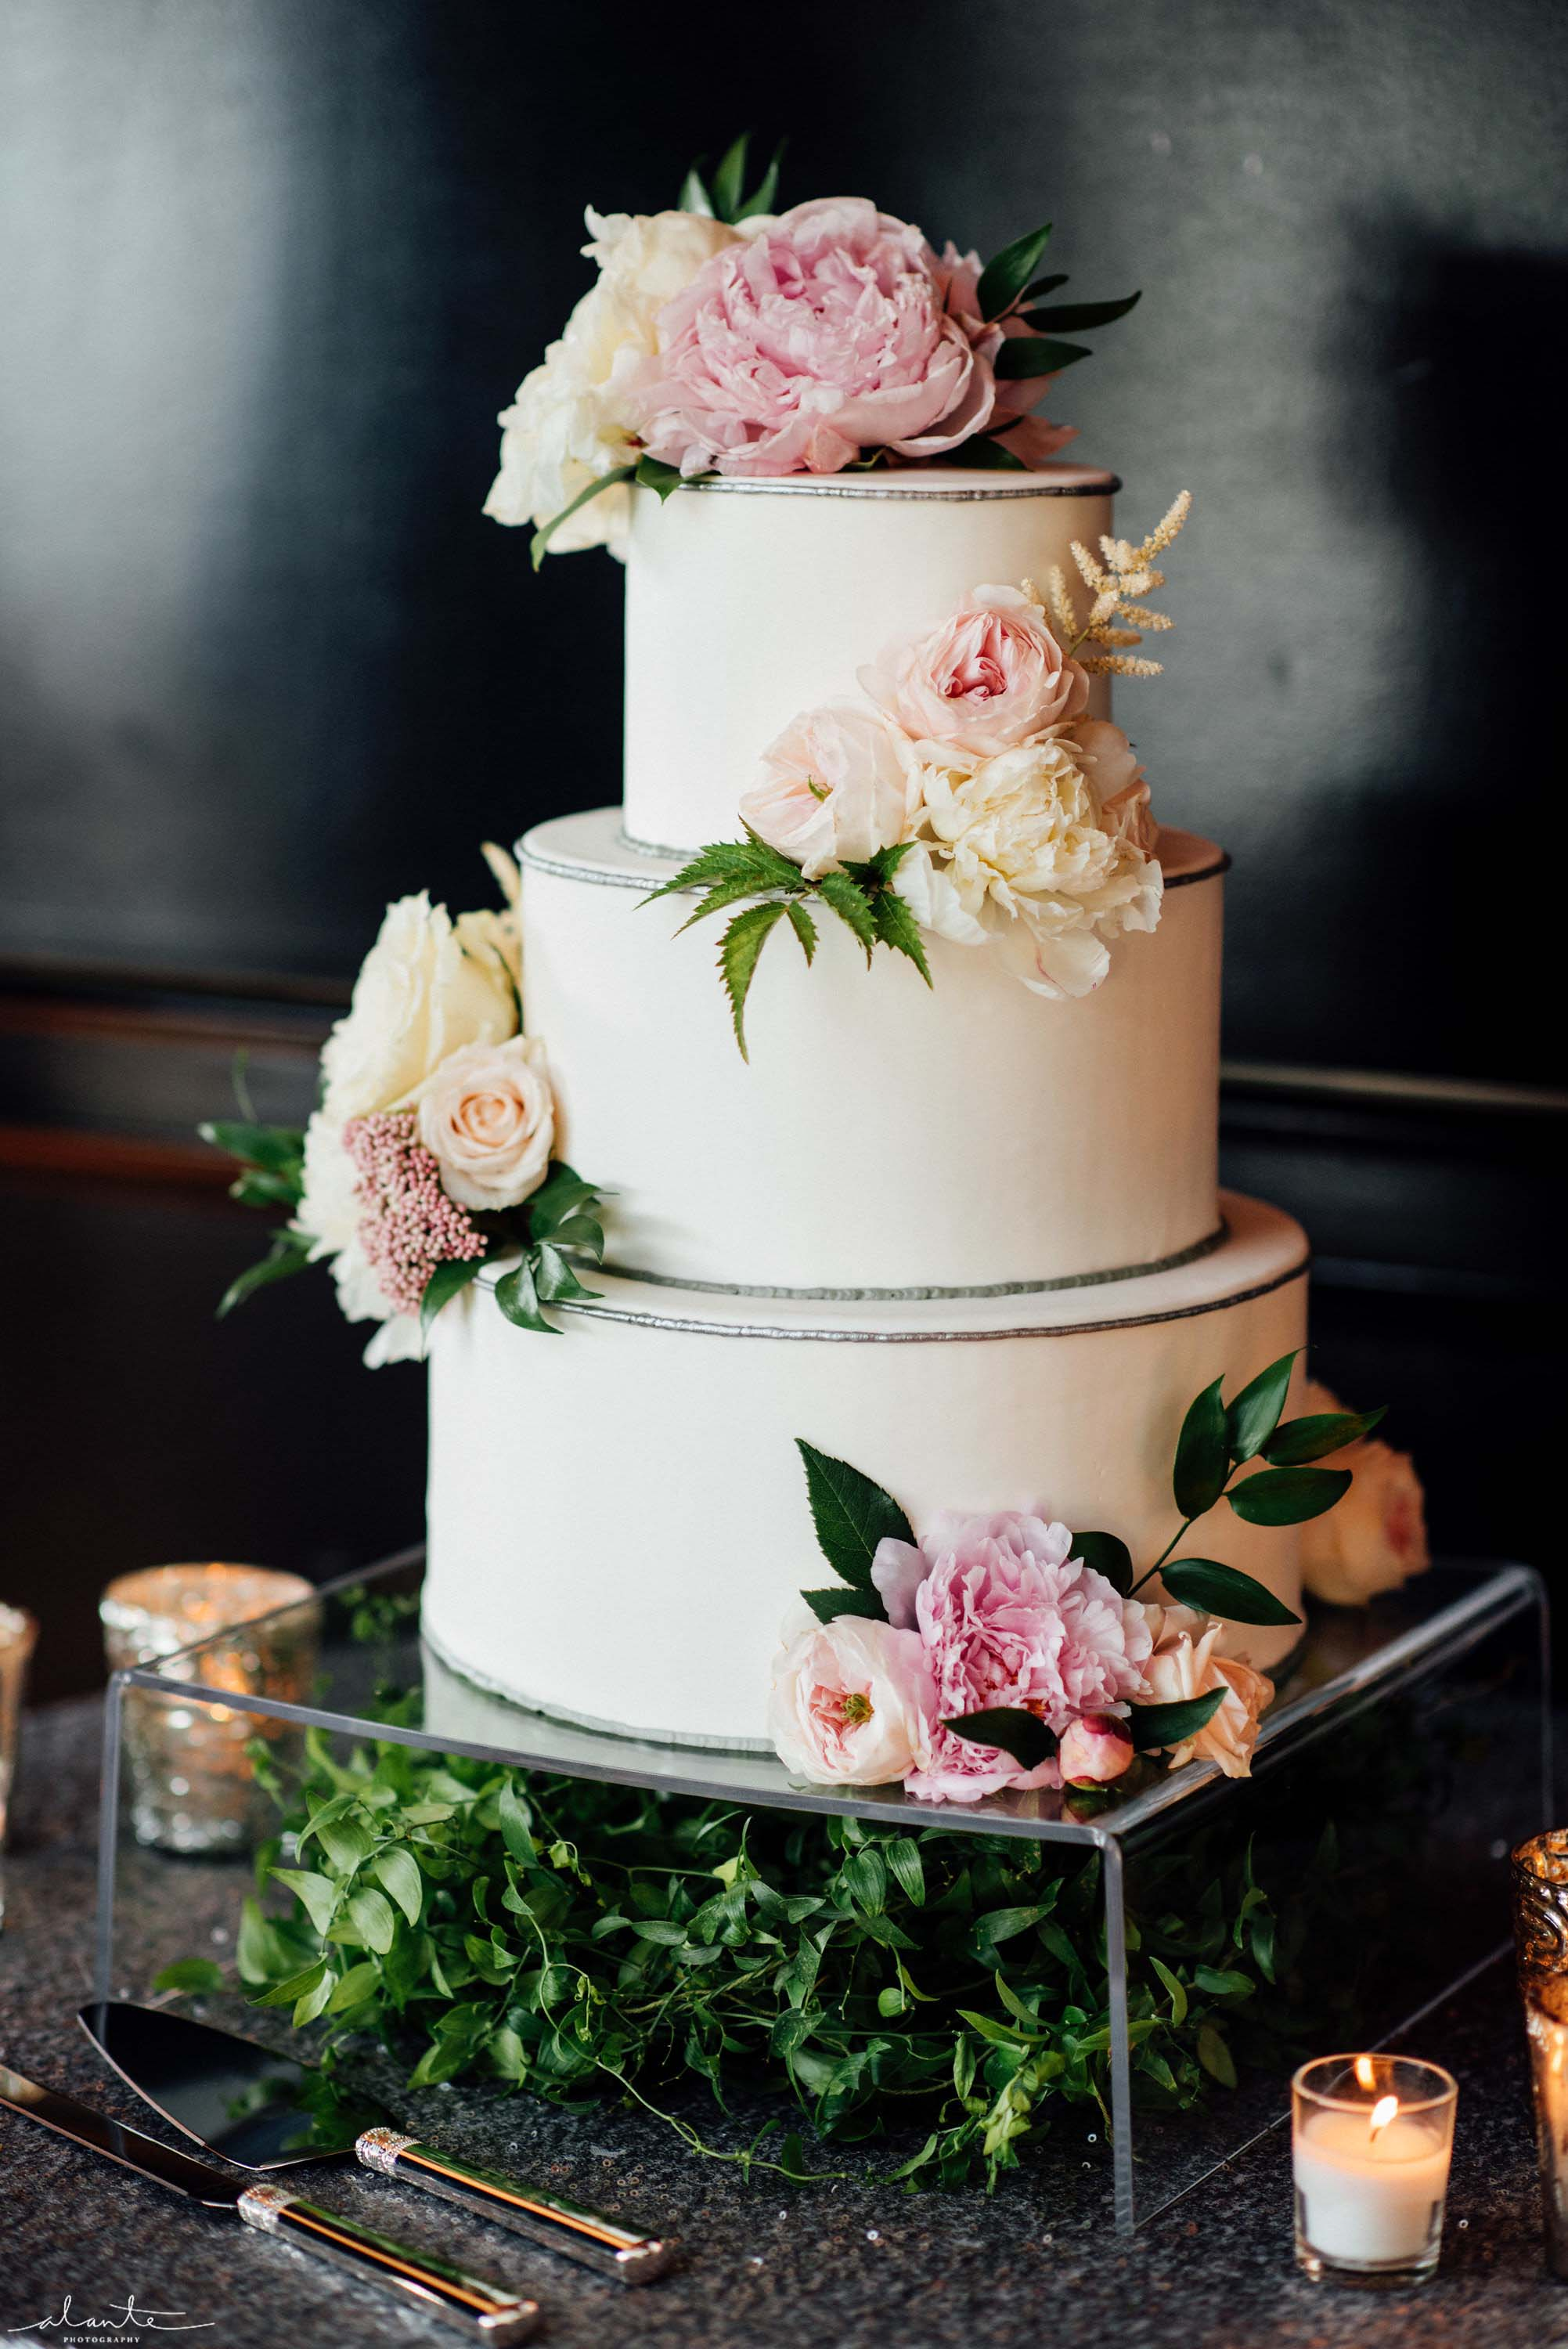 Wedding cake with pink flowers, Olympic Rooftop Pavilion wedding with pink peonies by Flora Nova Design Seattle